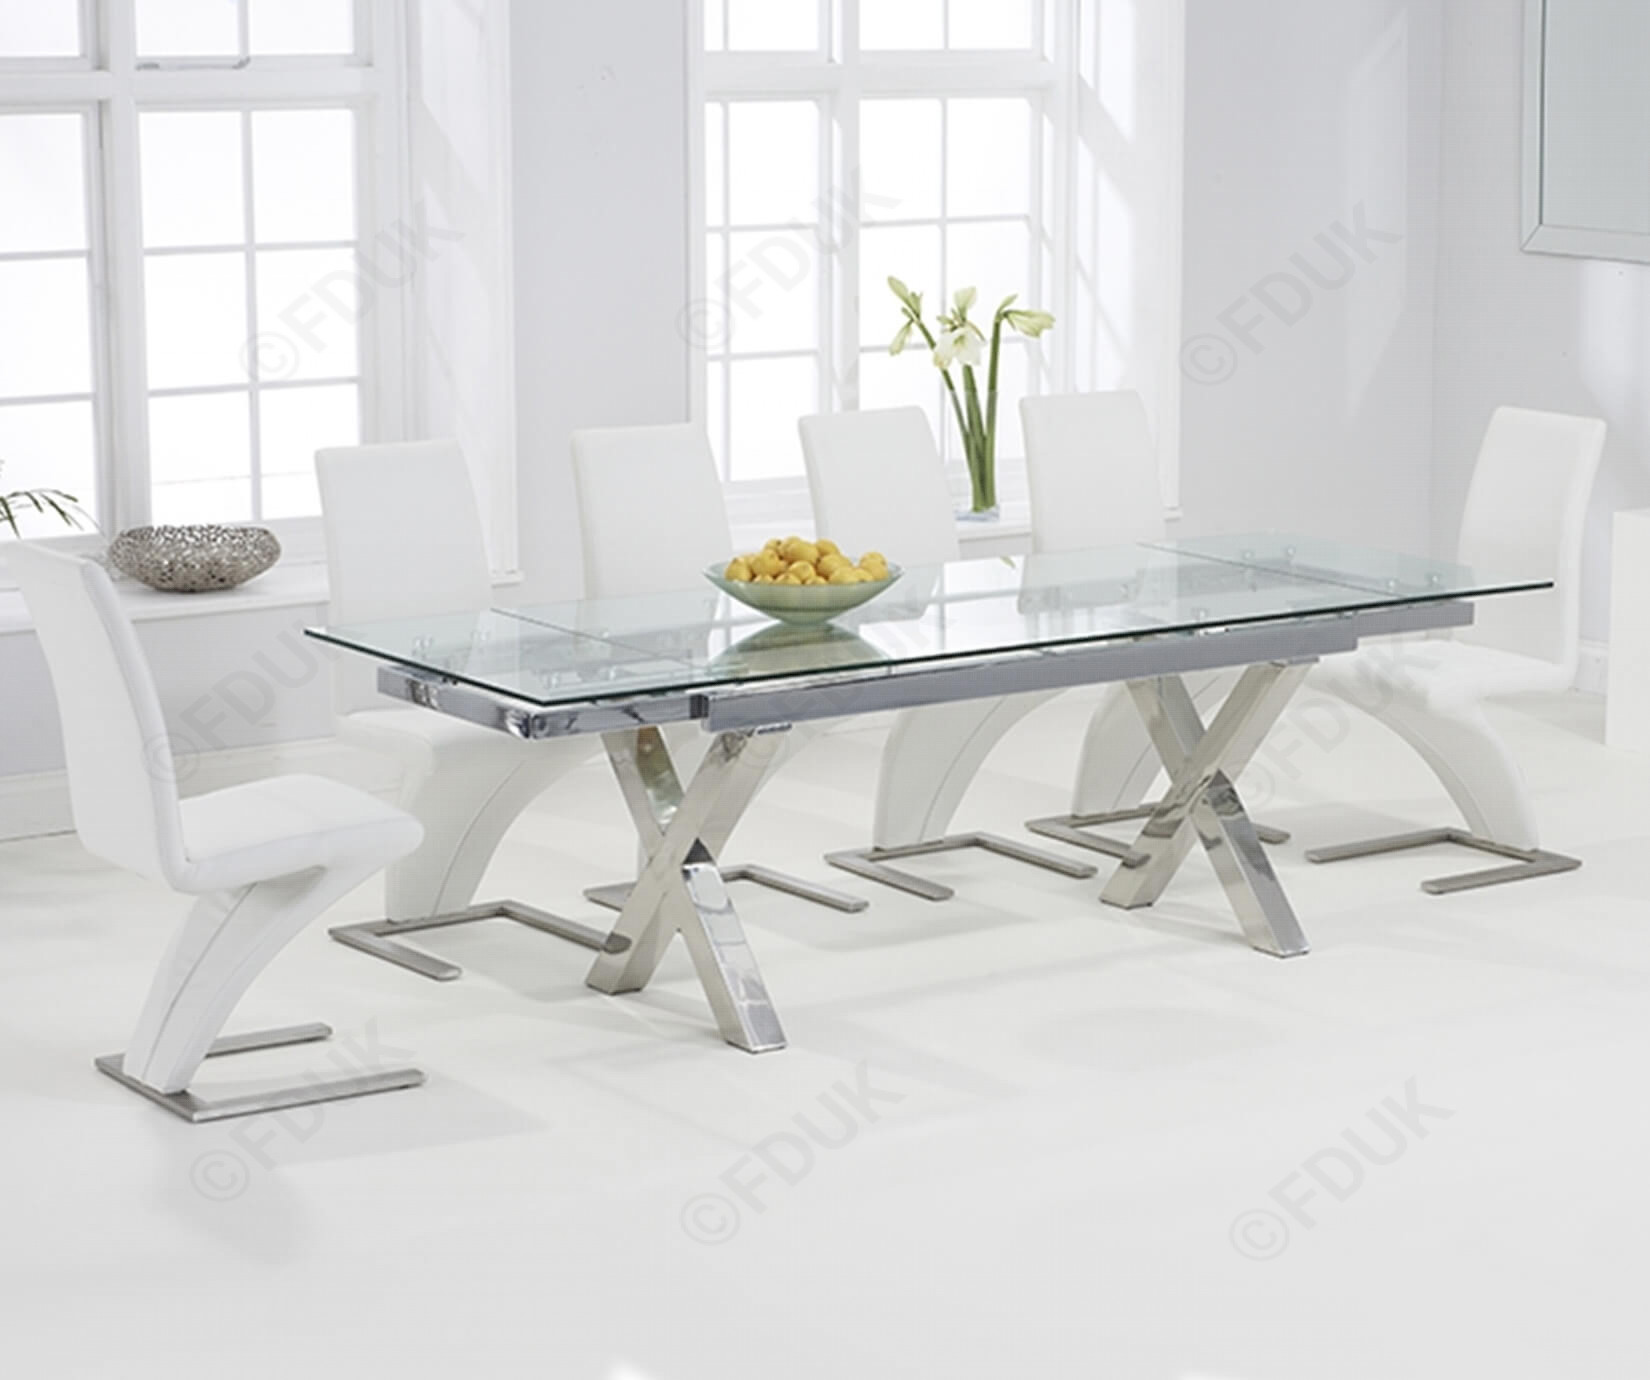 glass dining table with white chairs